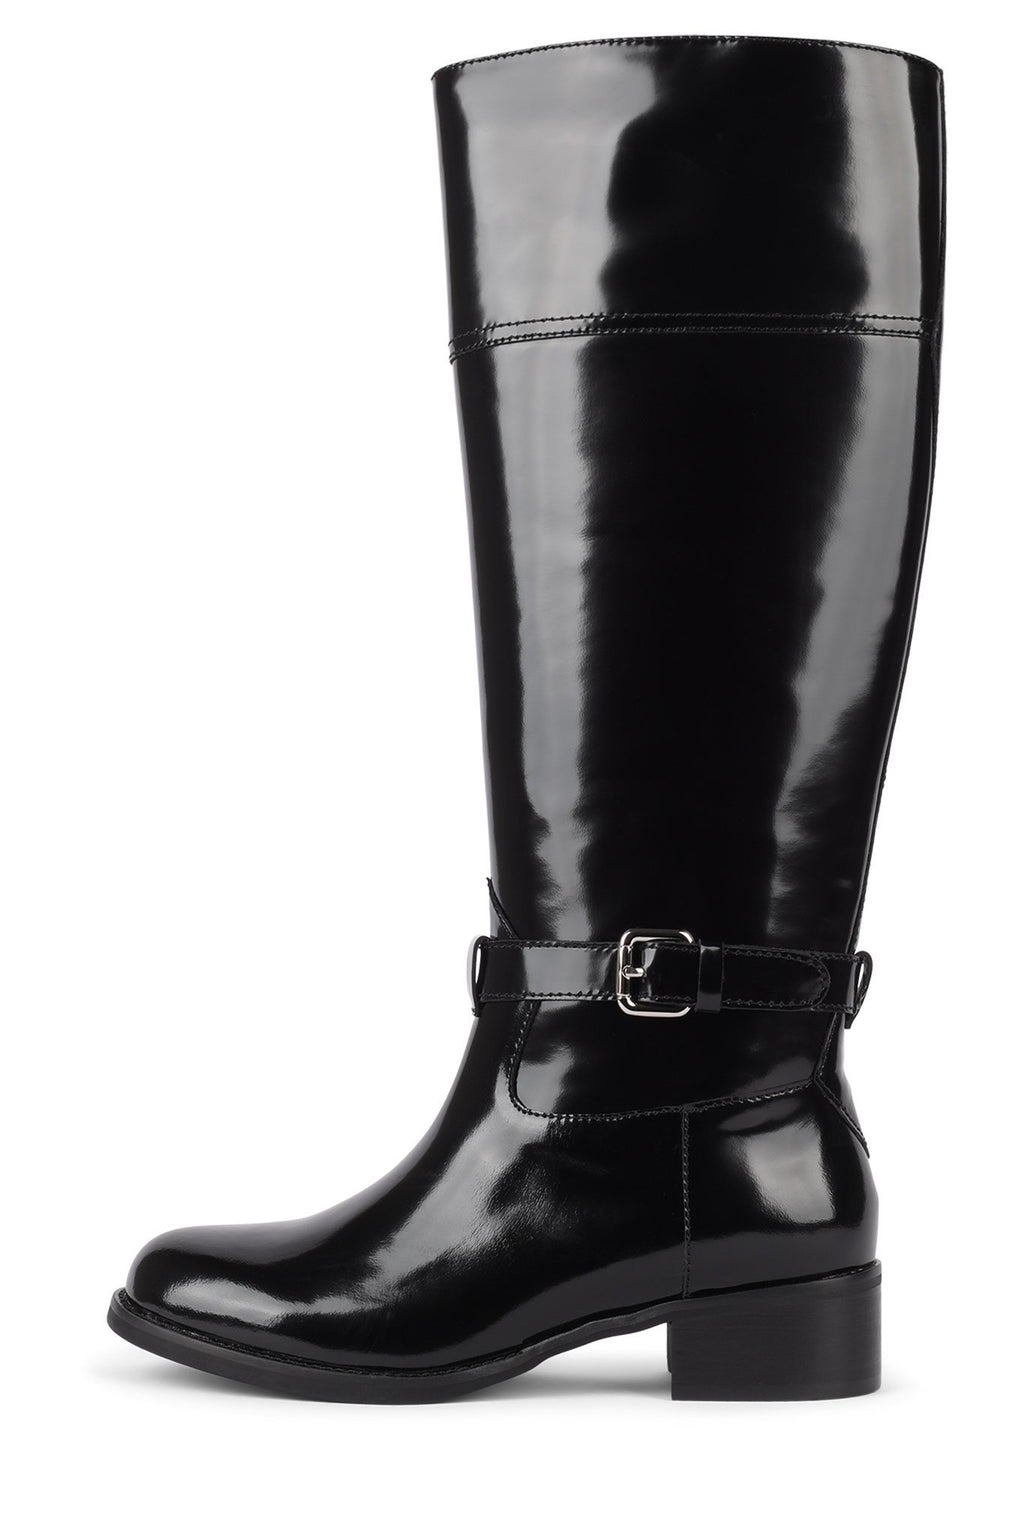 GLAMPING Knee-High Boot Jeffrey Campbell Black Box 6